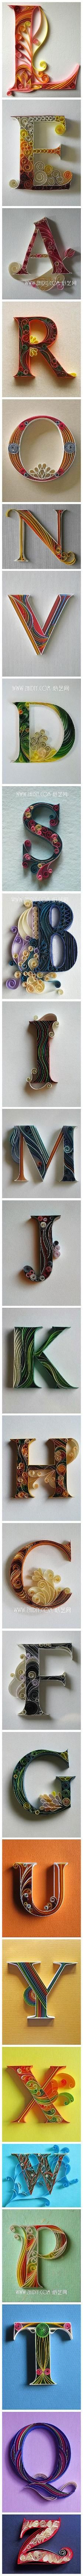 Paper Quilling Ideas; someone's trying to spell my name!